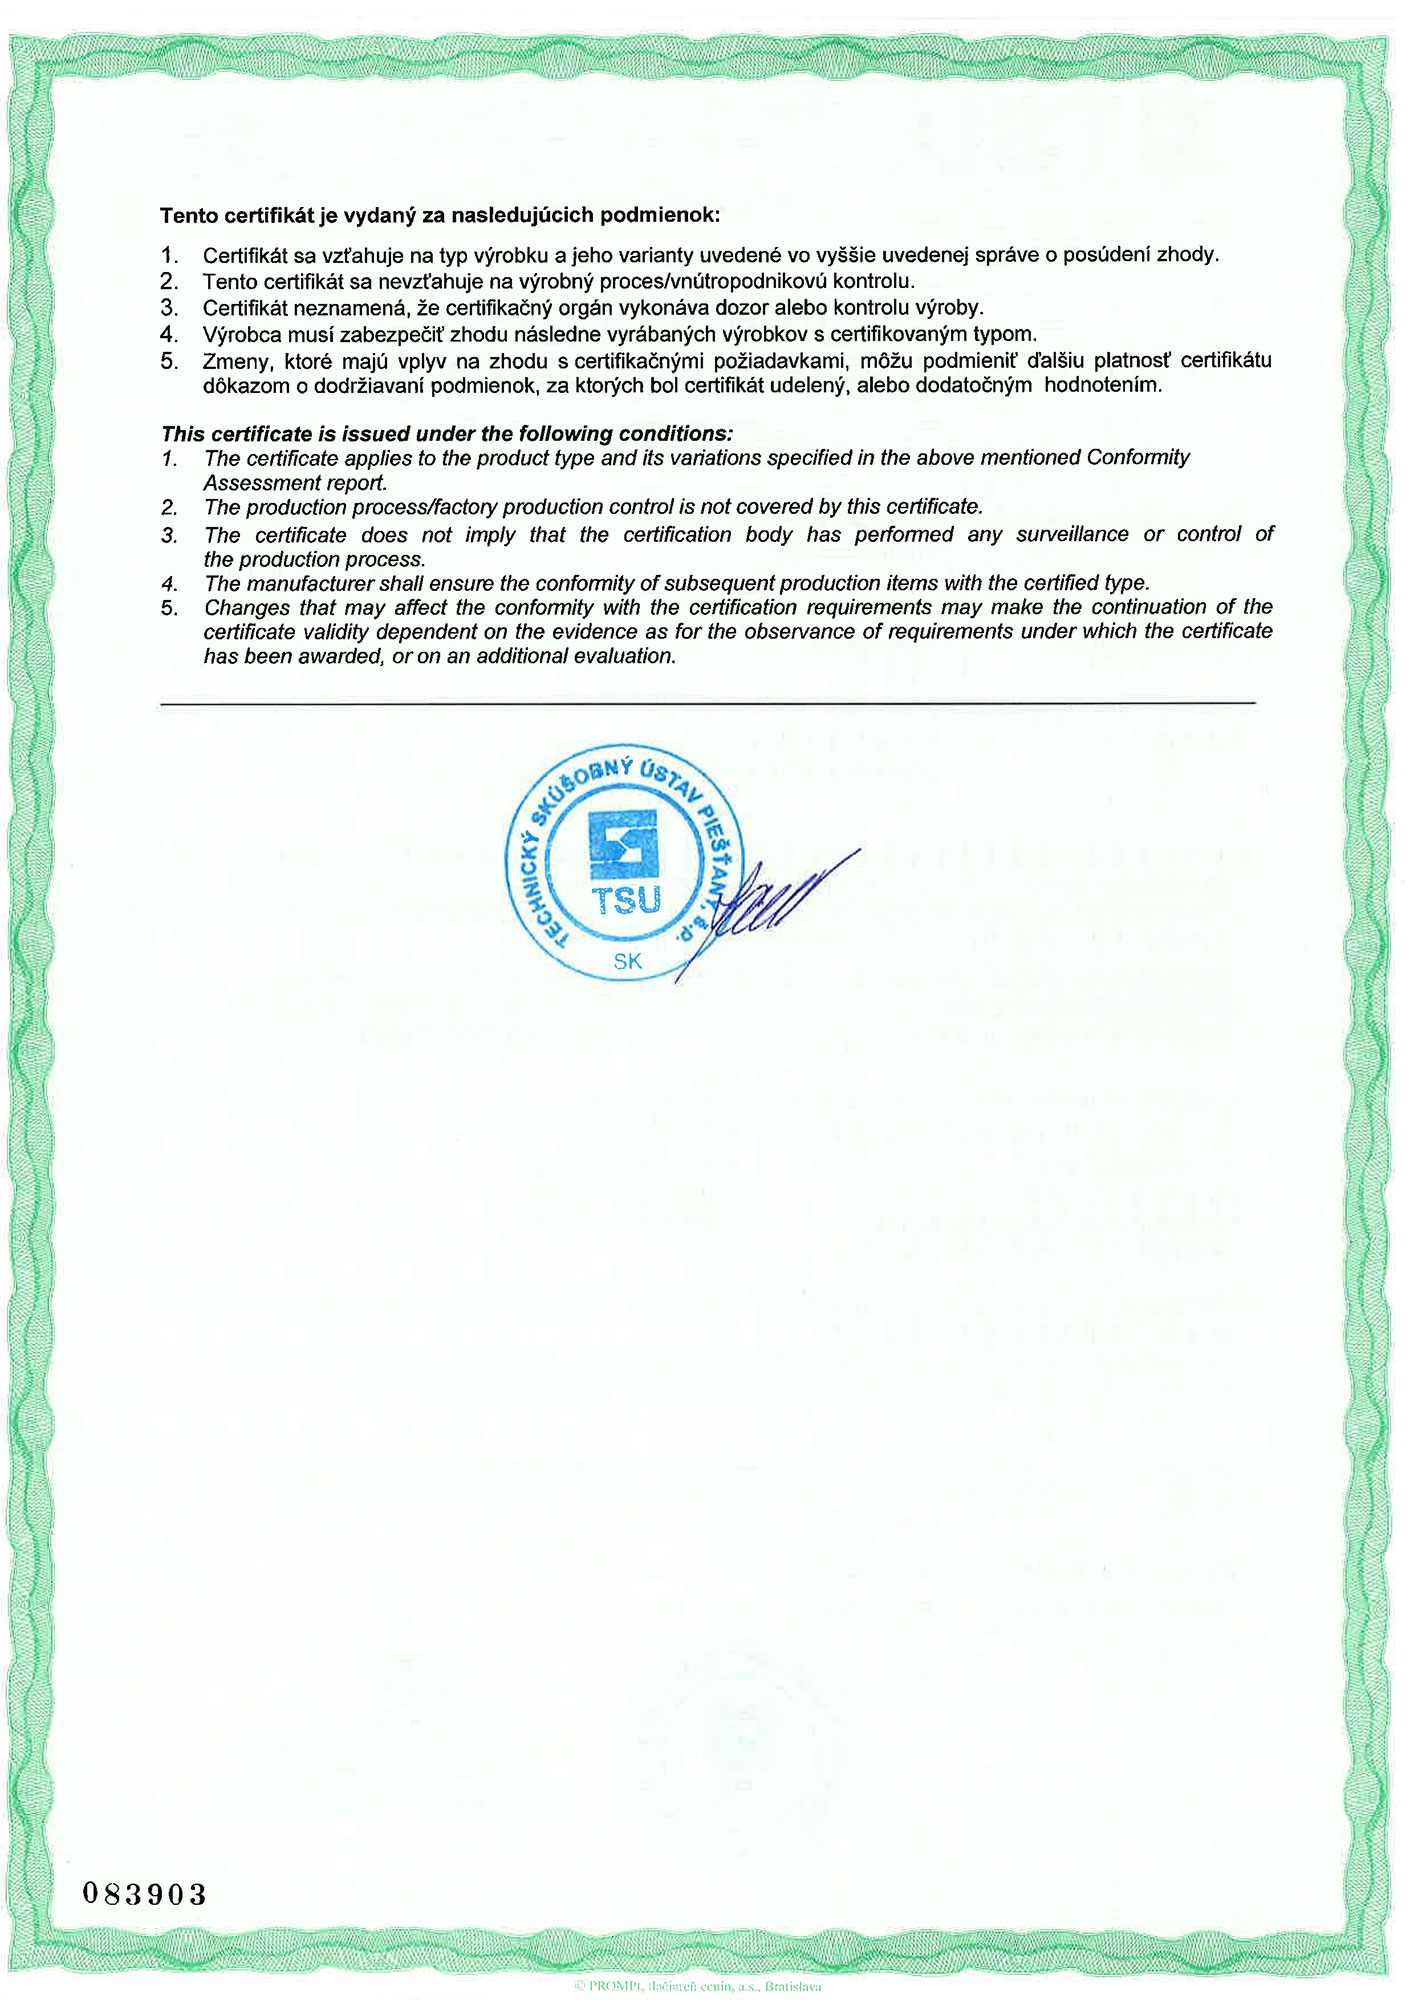 The Certificate of Conformity